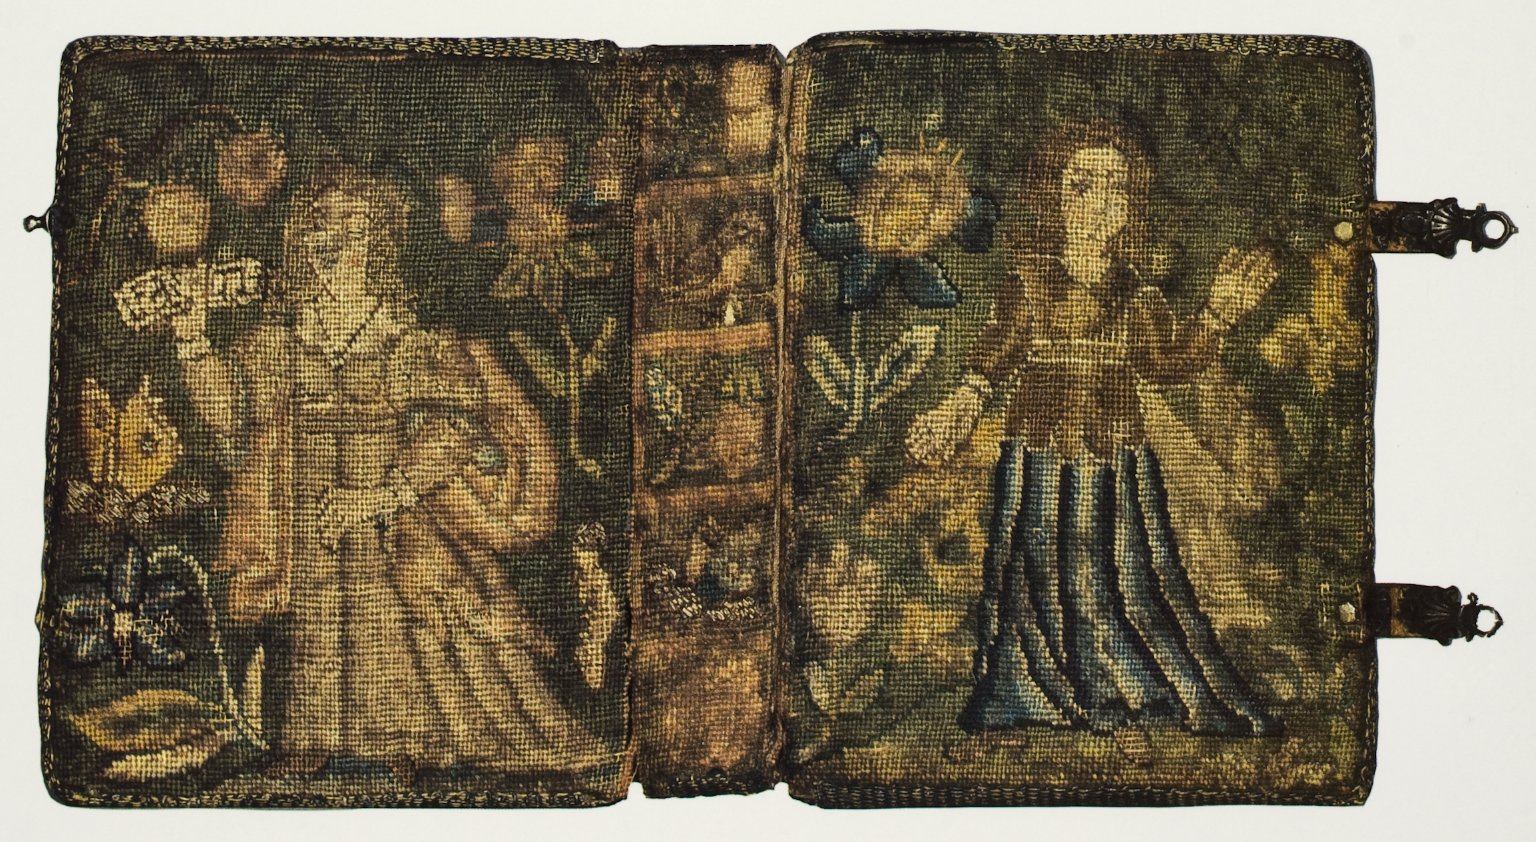 Covers, STC 2661.